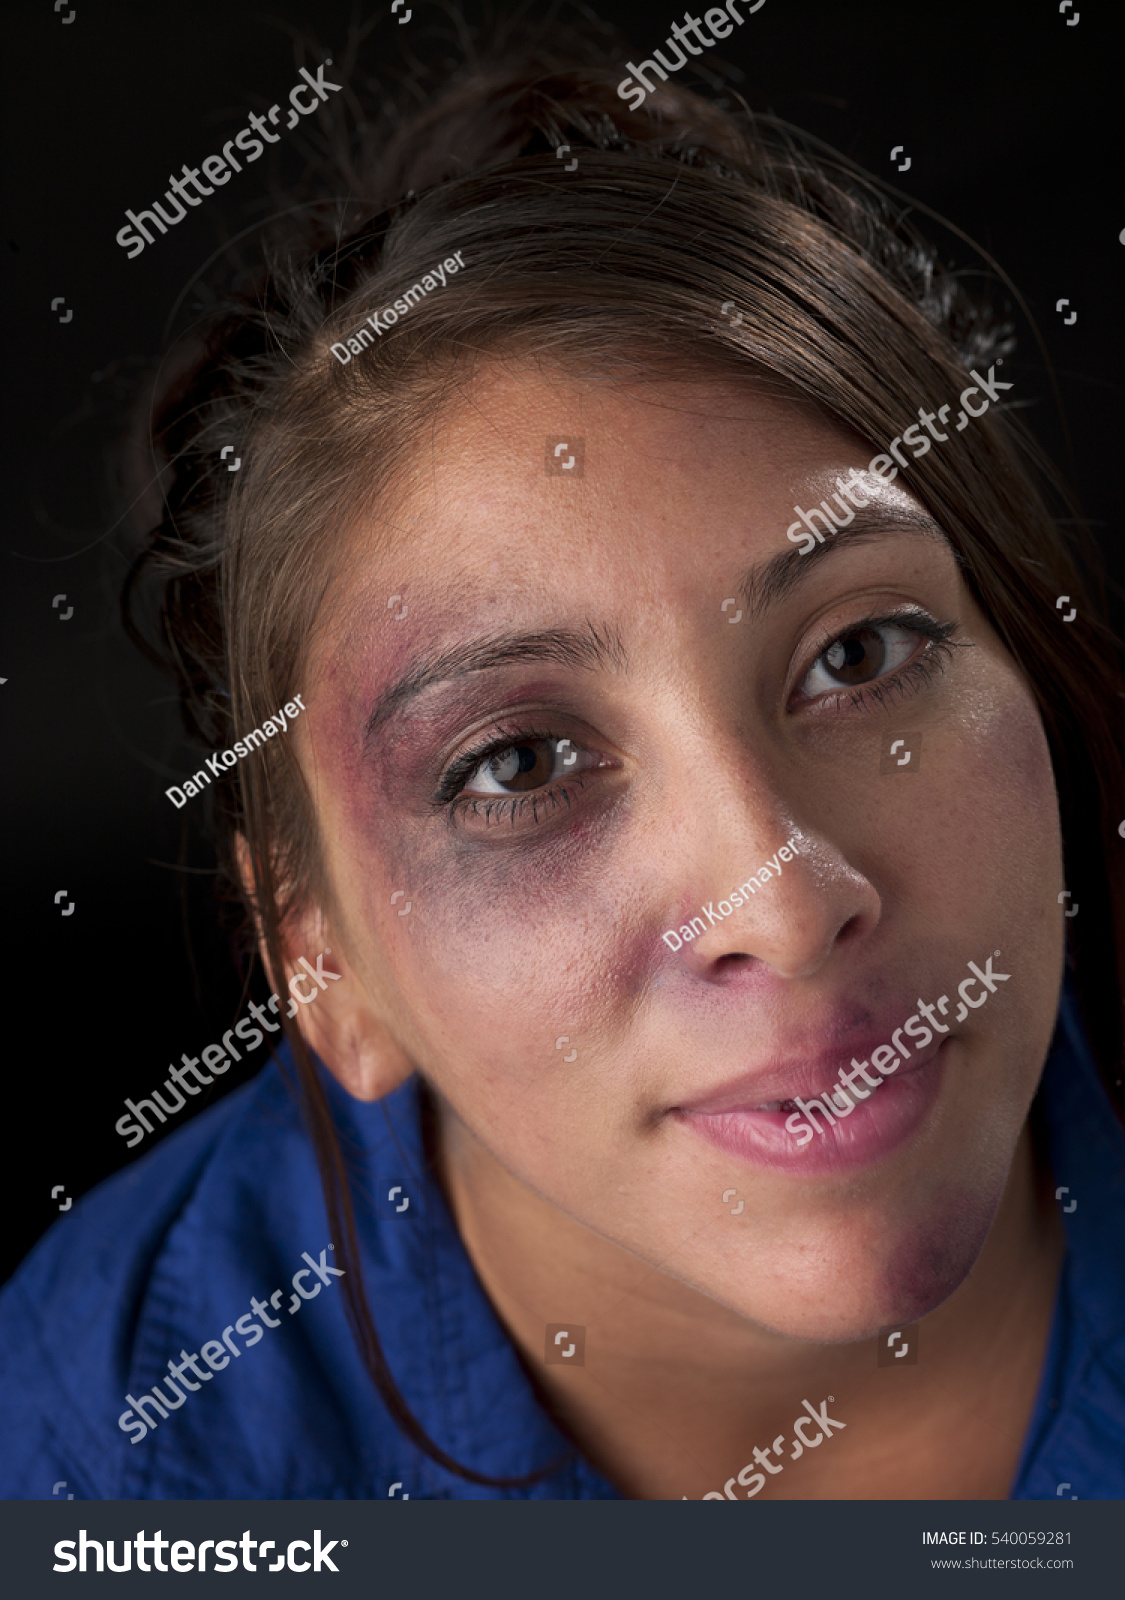 woman body facial injuries which can stock photo 540059281